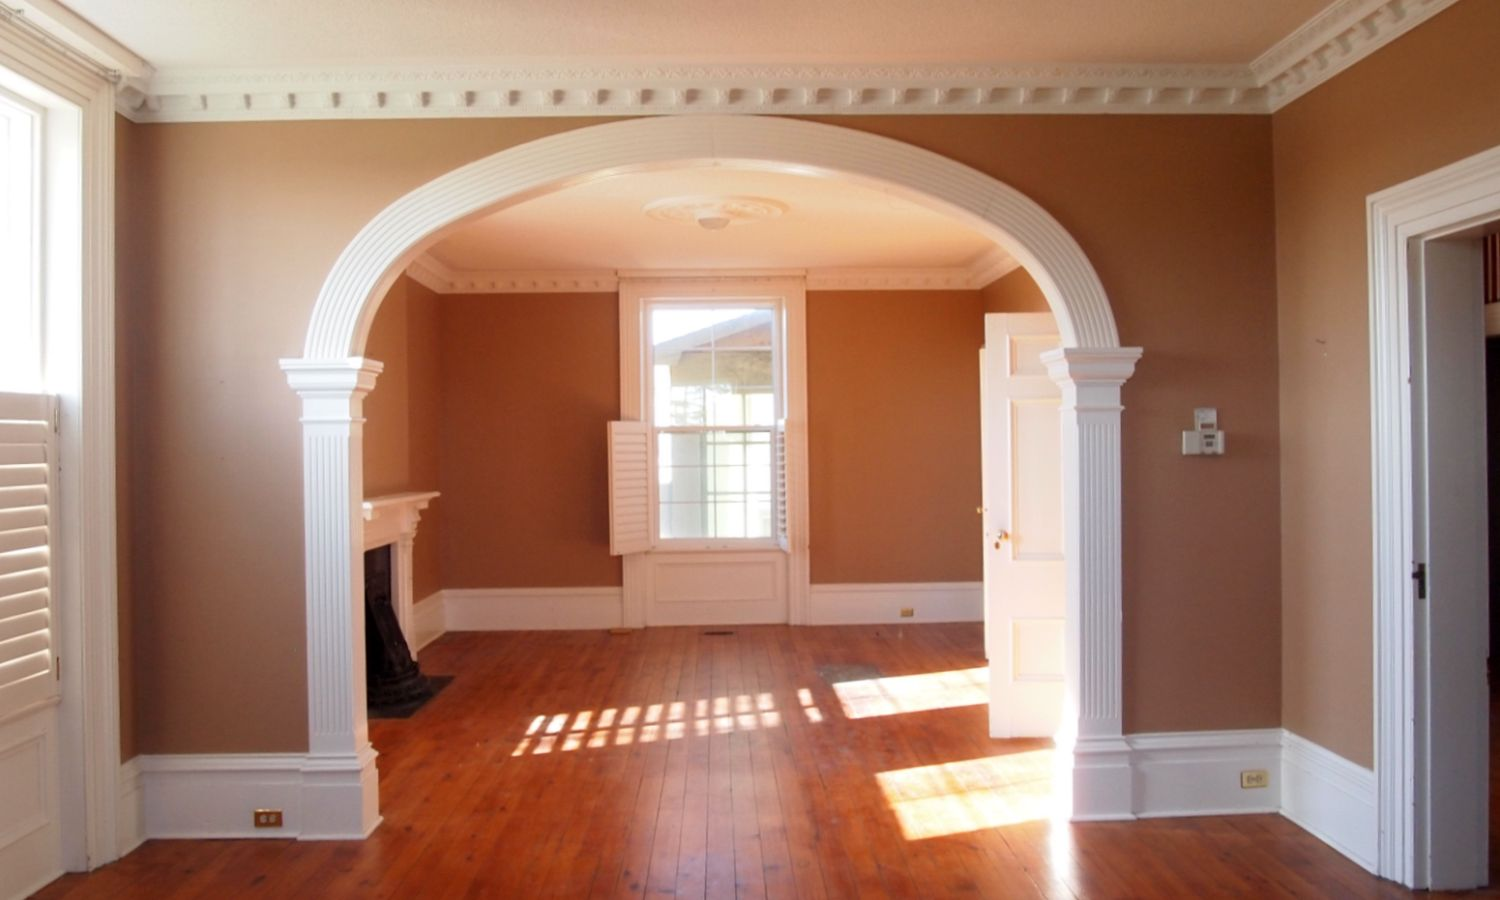 Archway illustrating trimwork found throughout the house